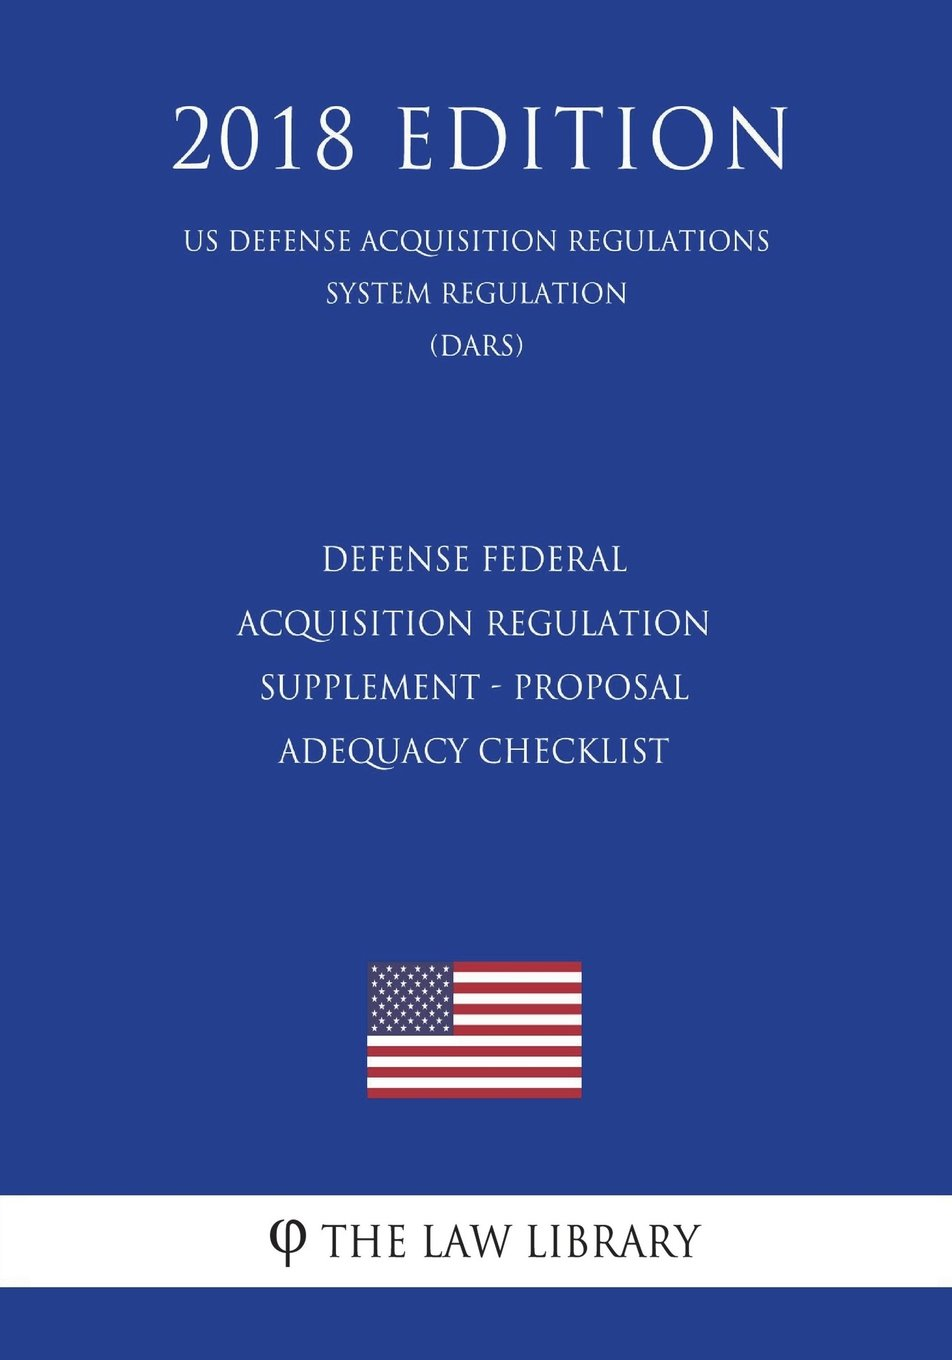 Download Defense Federal Acquisition Regulation Supplement - Proposal Adequacy Checklist (US Defense Acquisition Regulations System Regulation) (DARS) (2018 Edition) pdf epub